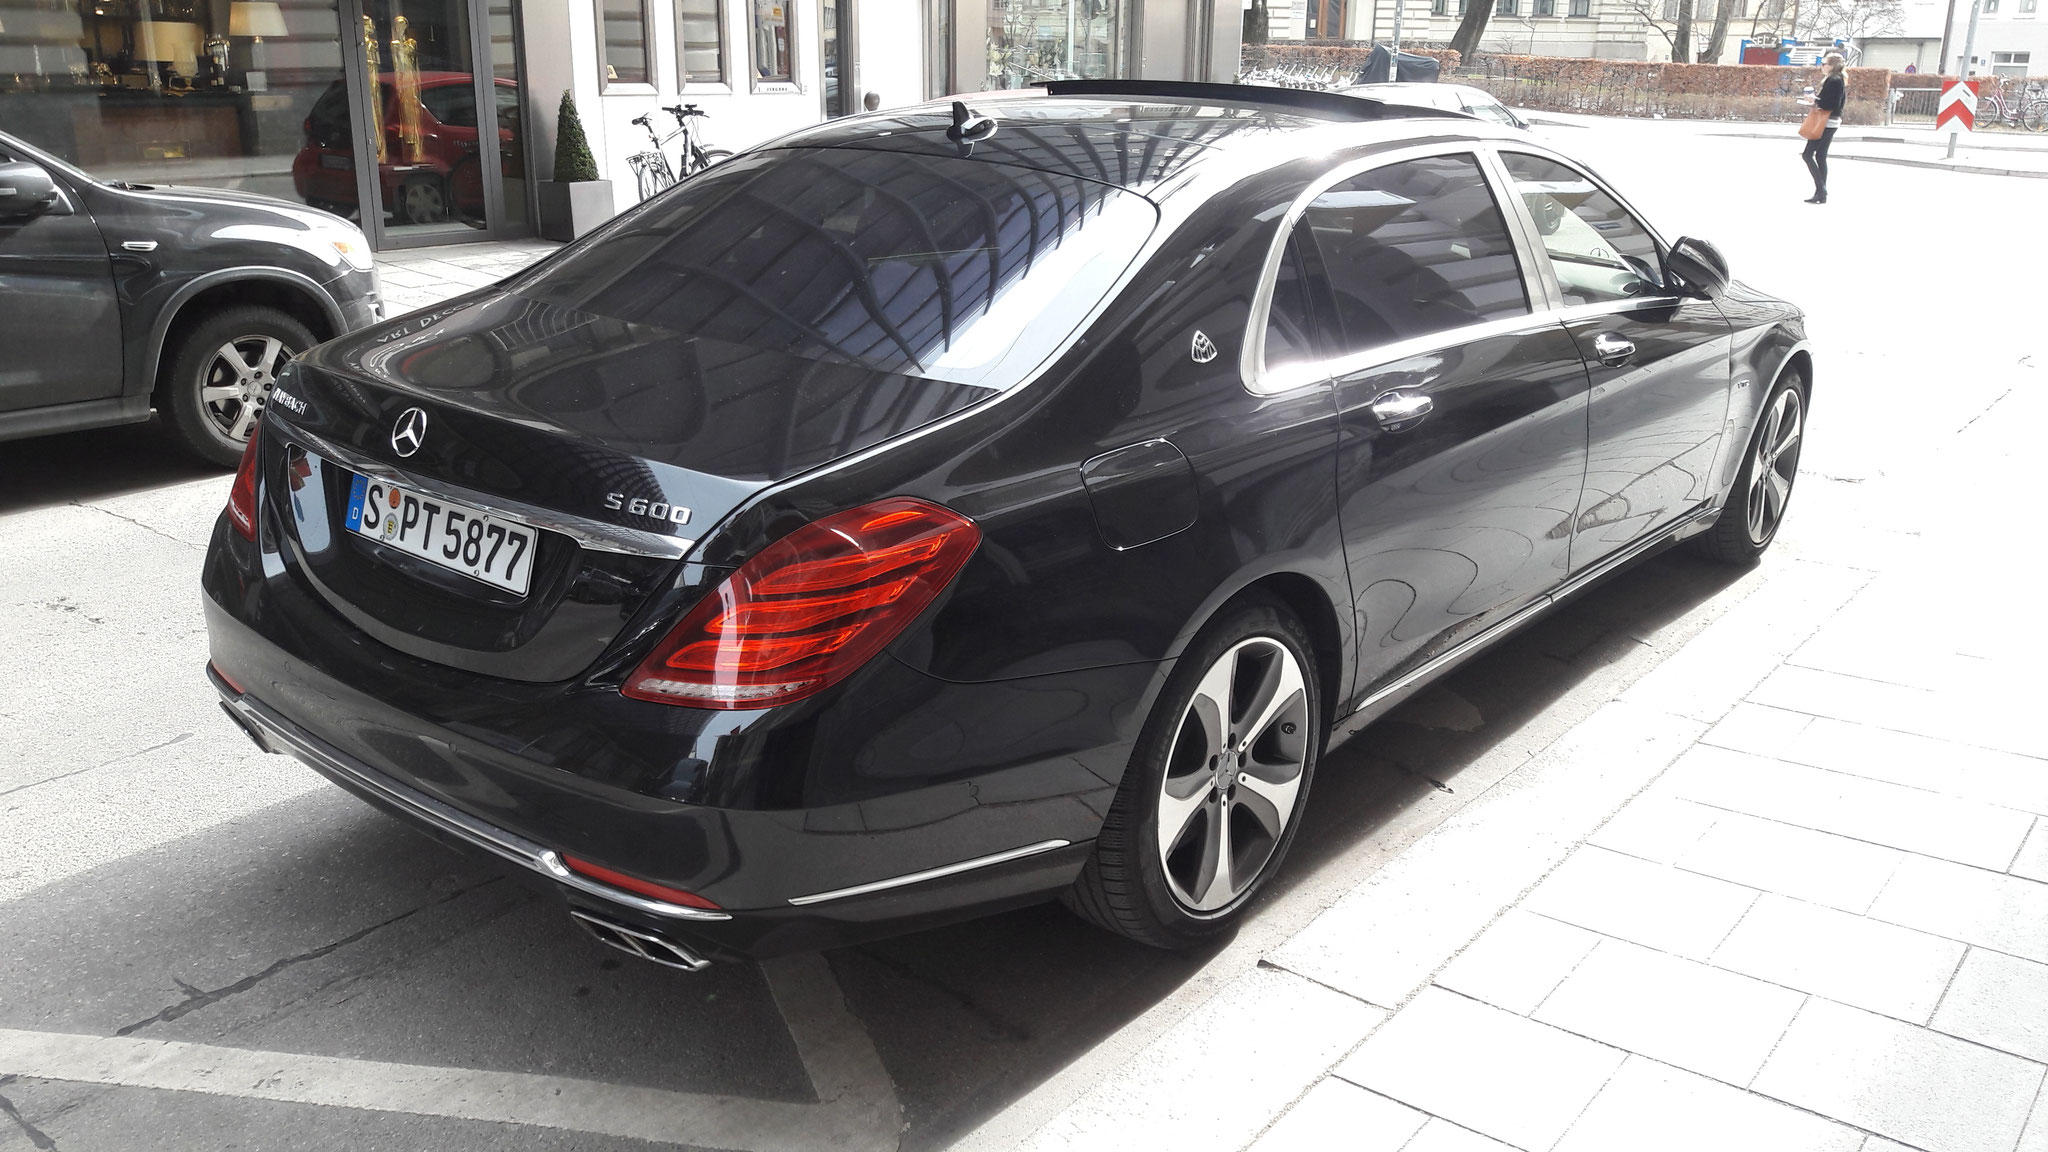 Mercedes Maybach S600 - S-PT-5877